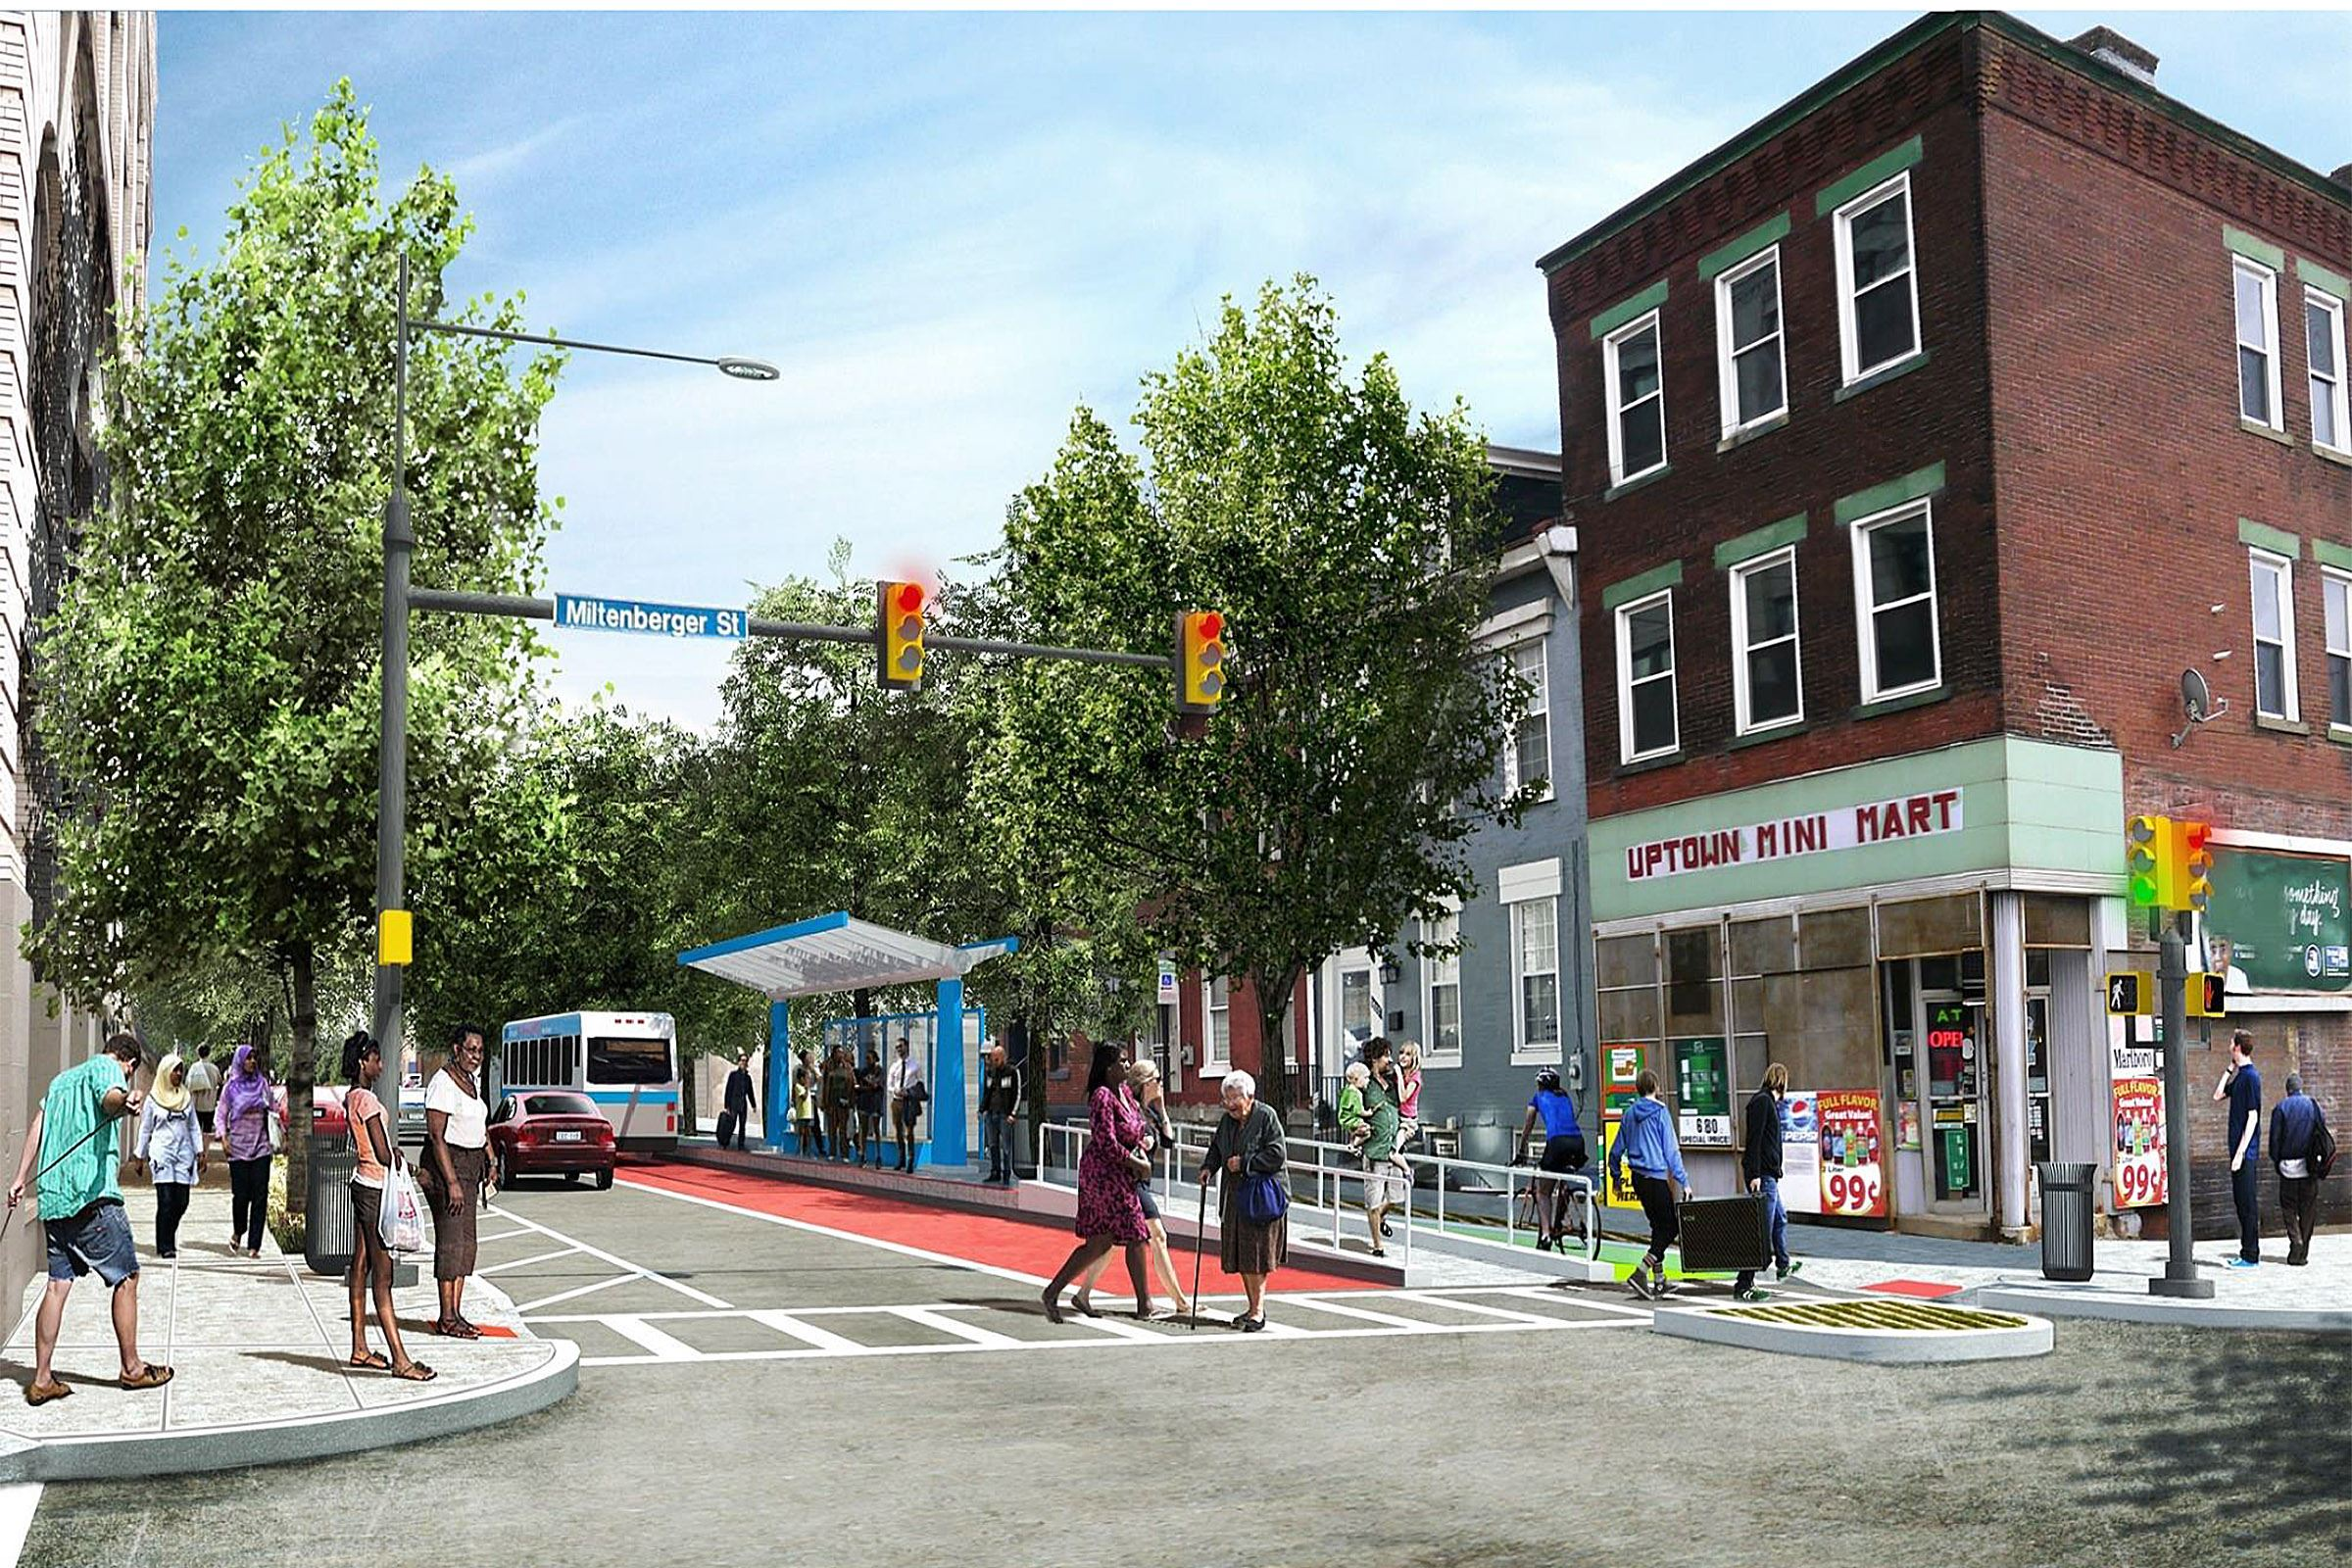 An artist's rendering showing how the planned Bus Rapid Transit system might run through Uptown.